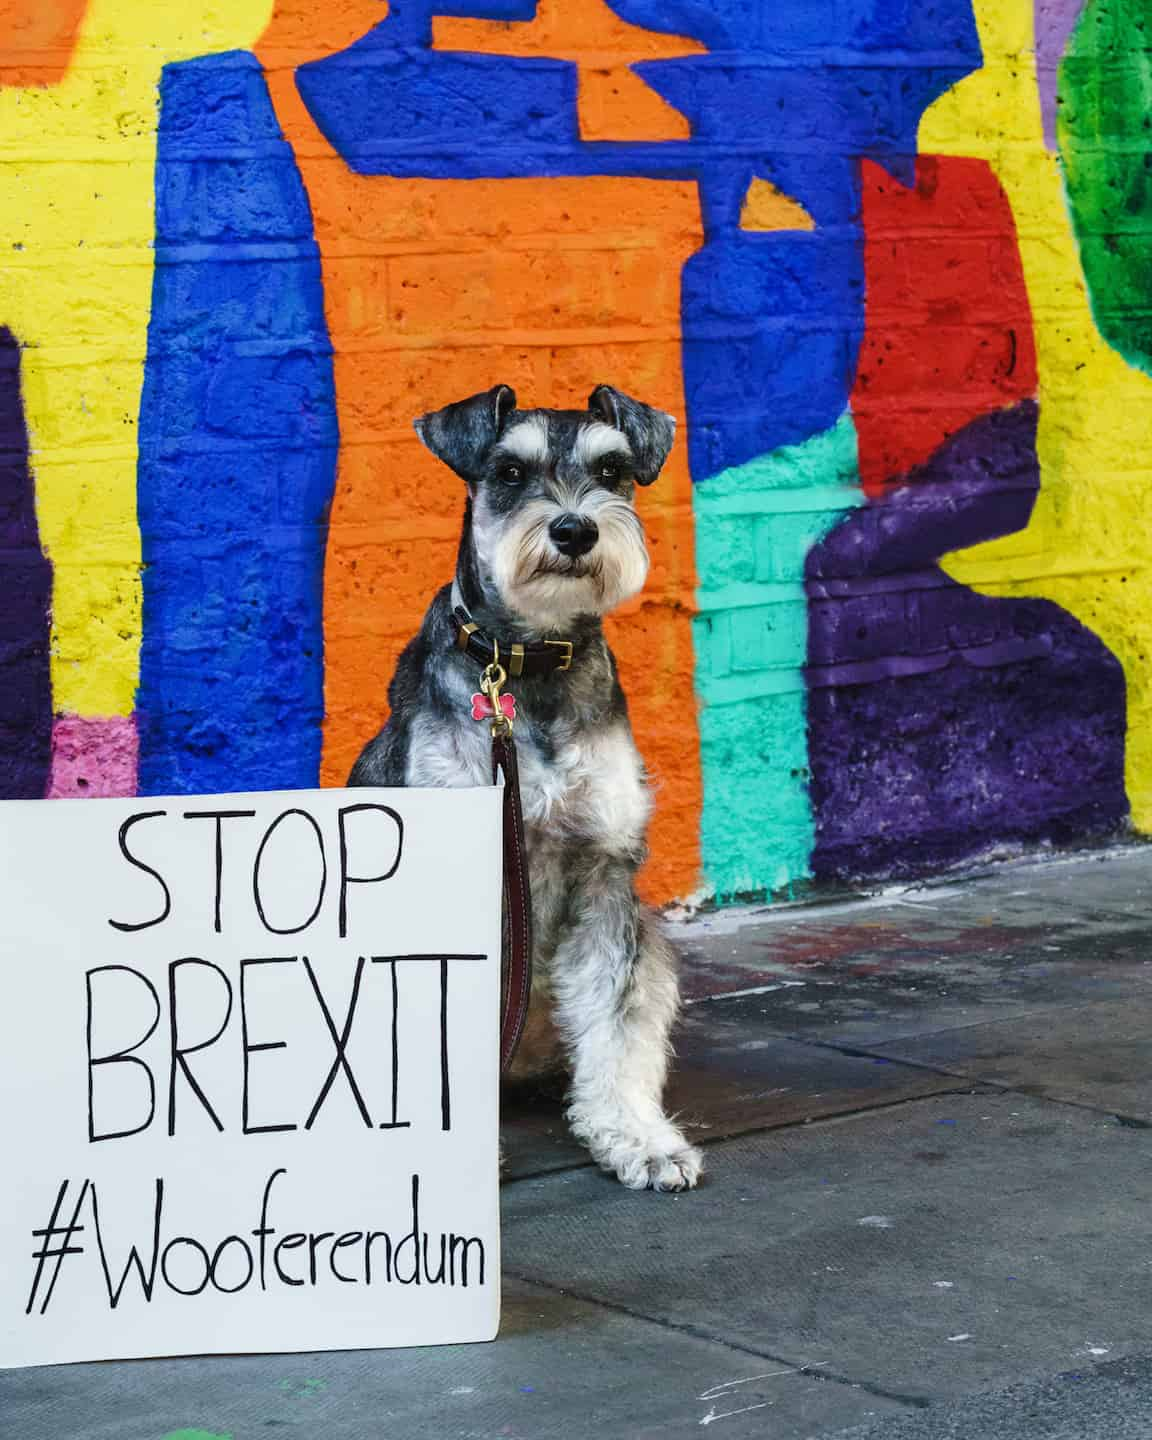 London Dogs To Bark Out Against Brexit on the Wooferendum March - Rusty the Schnauzer